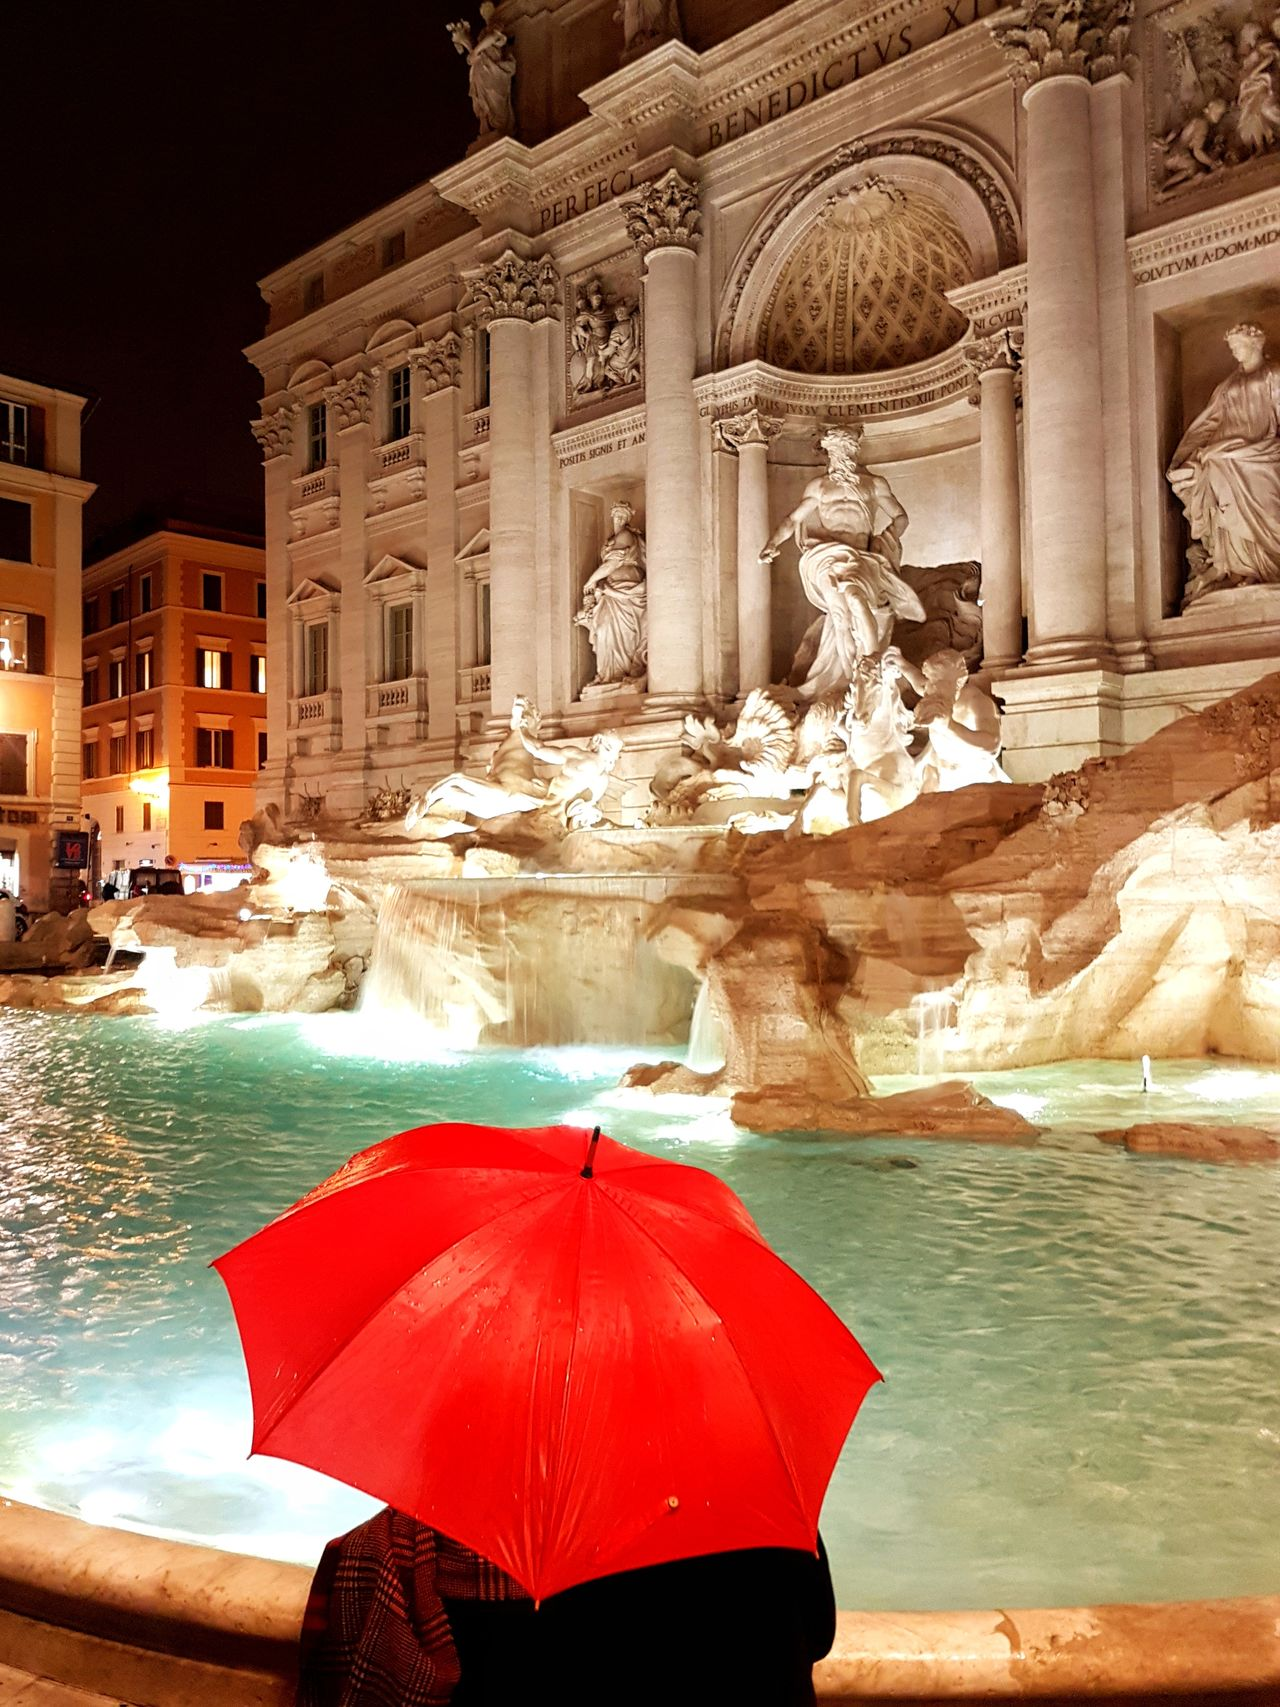 Rome Italy Rome Italy🇮🇹 Rome, Italy Rome Italy🇮🇹 Italy Trevi TreviFountain Architecture Outdoors Statue No People Architectural Column Travel City Architecture Tourism Travel Destinations Fountain People Water Statue Fountain Sky